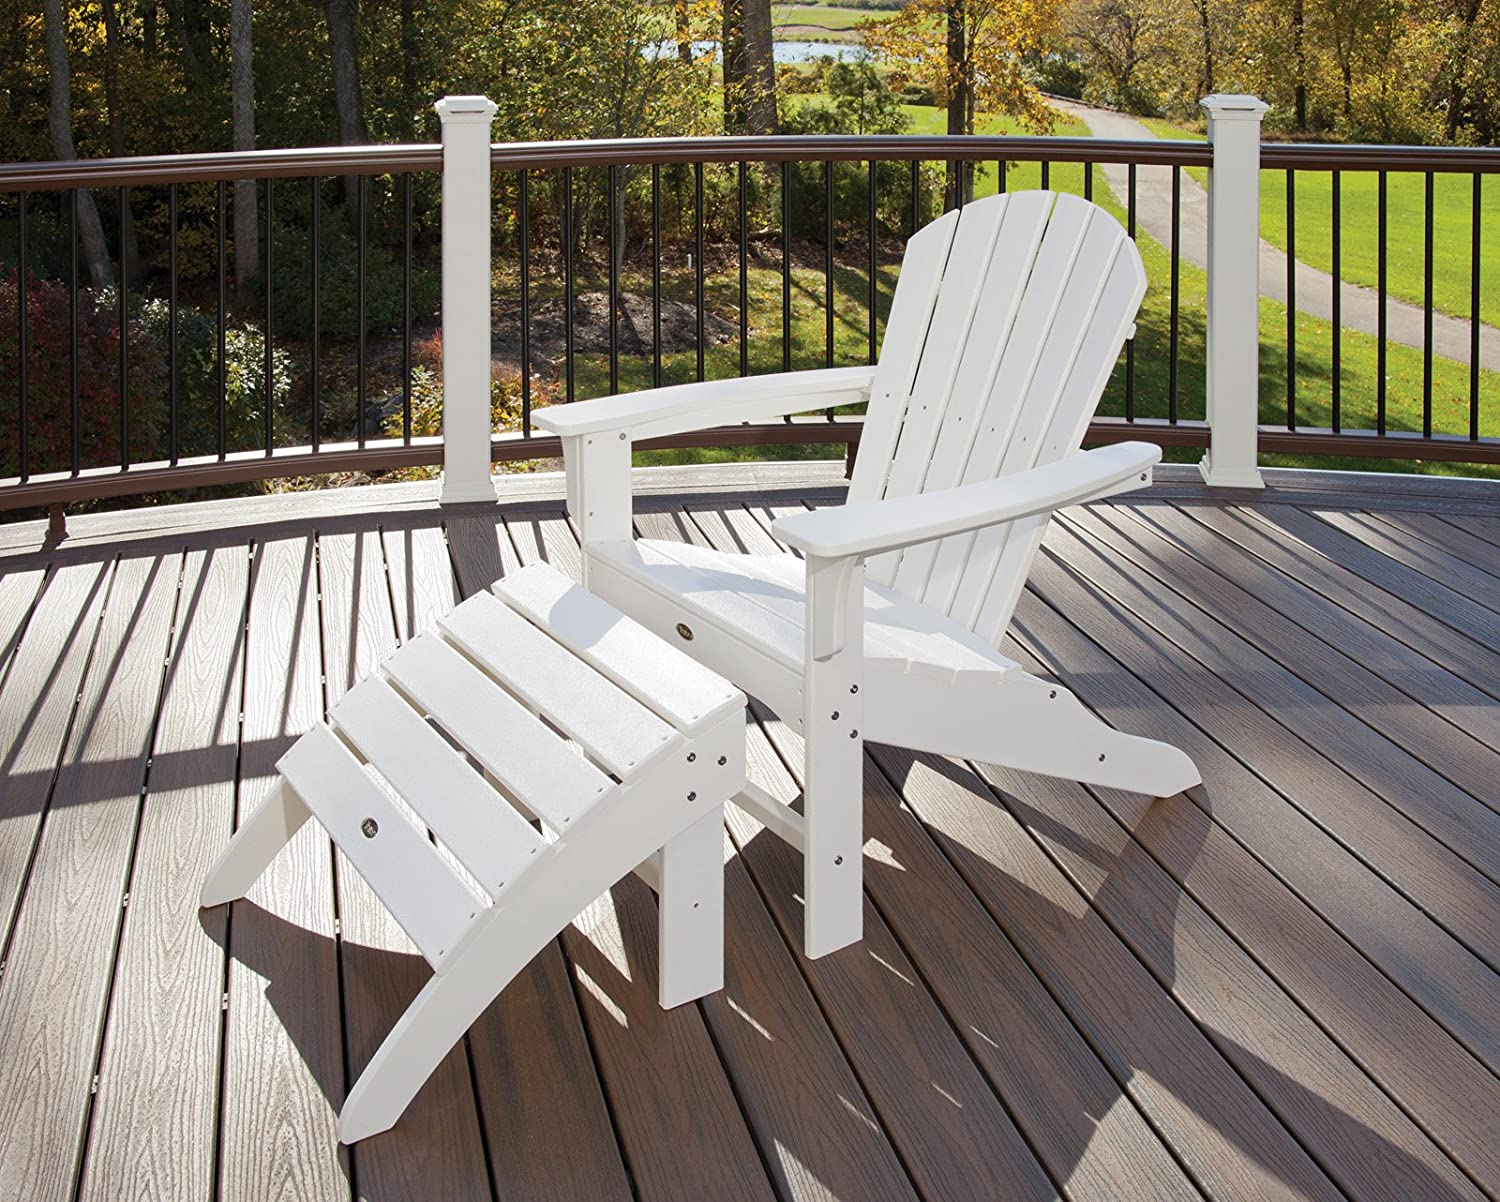 Trex Outdoor Furniture Cape Cod Adirondack Chair Tree House